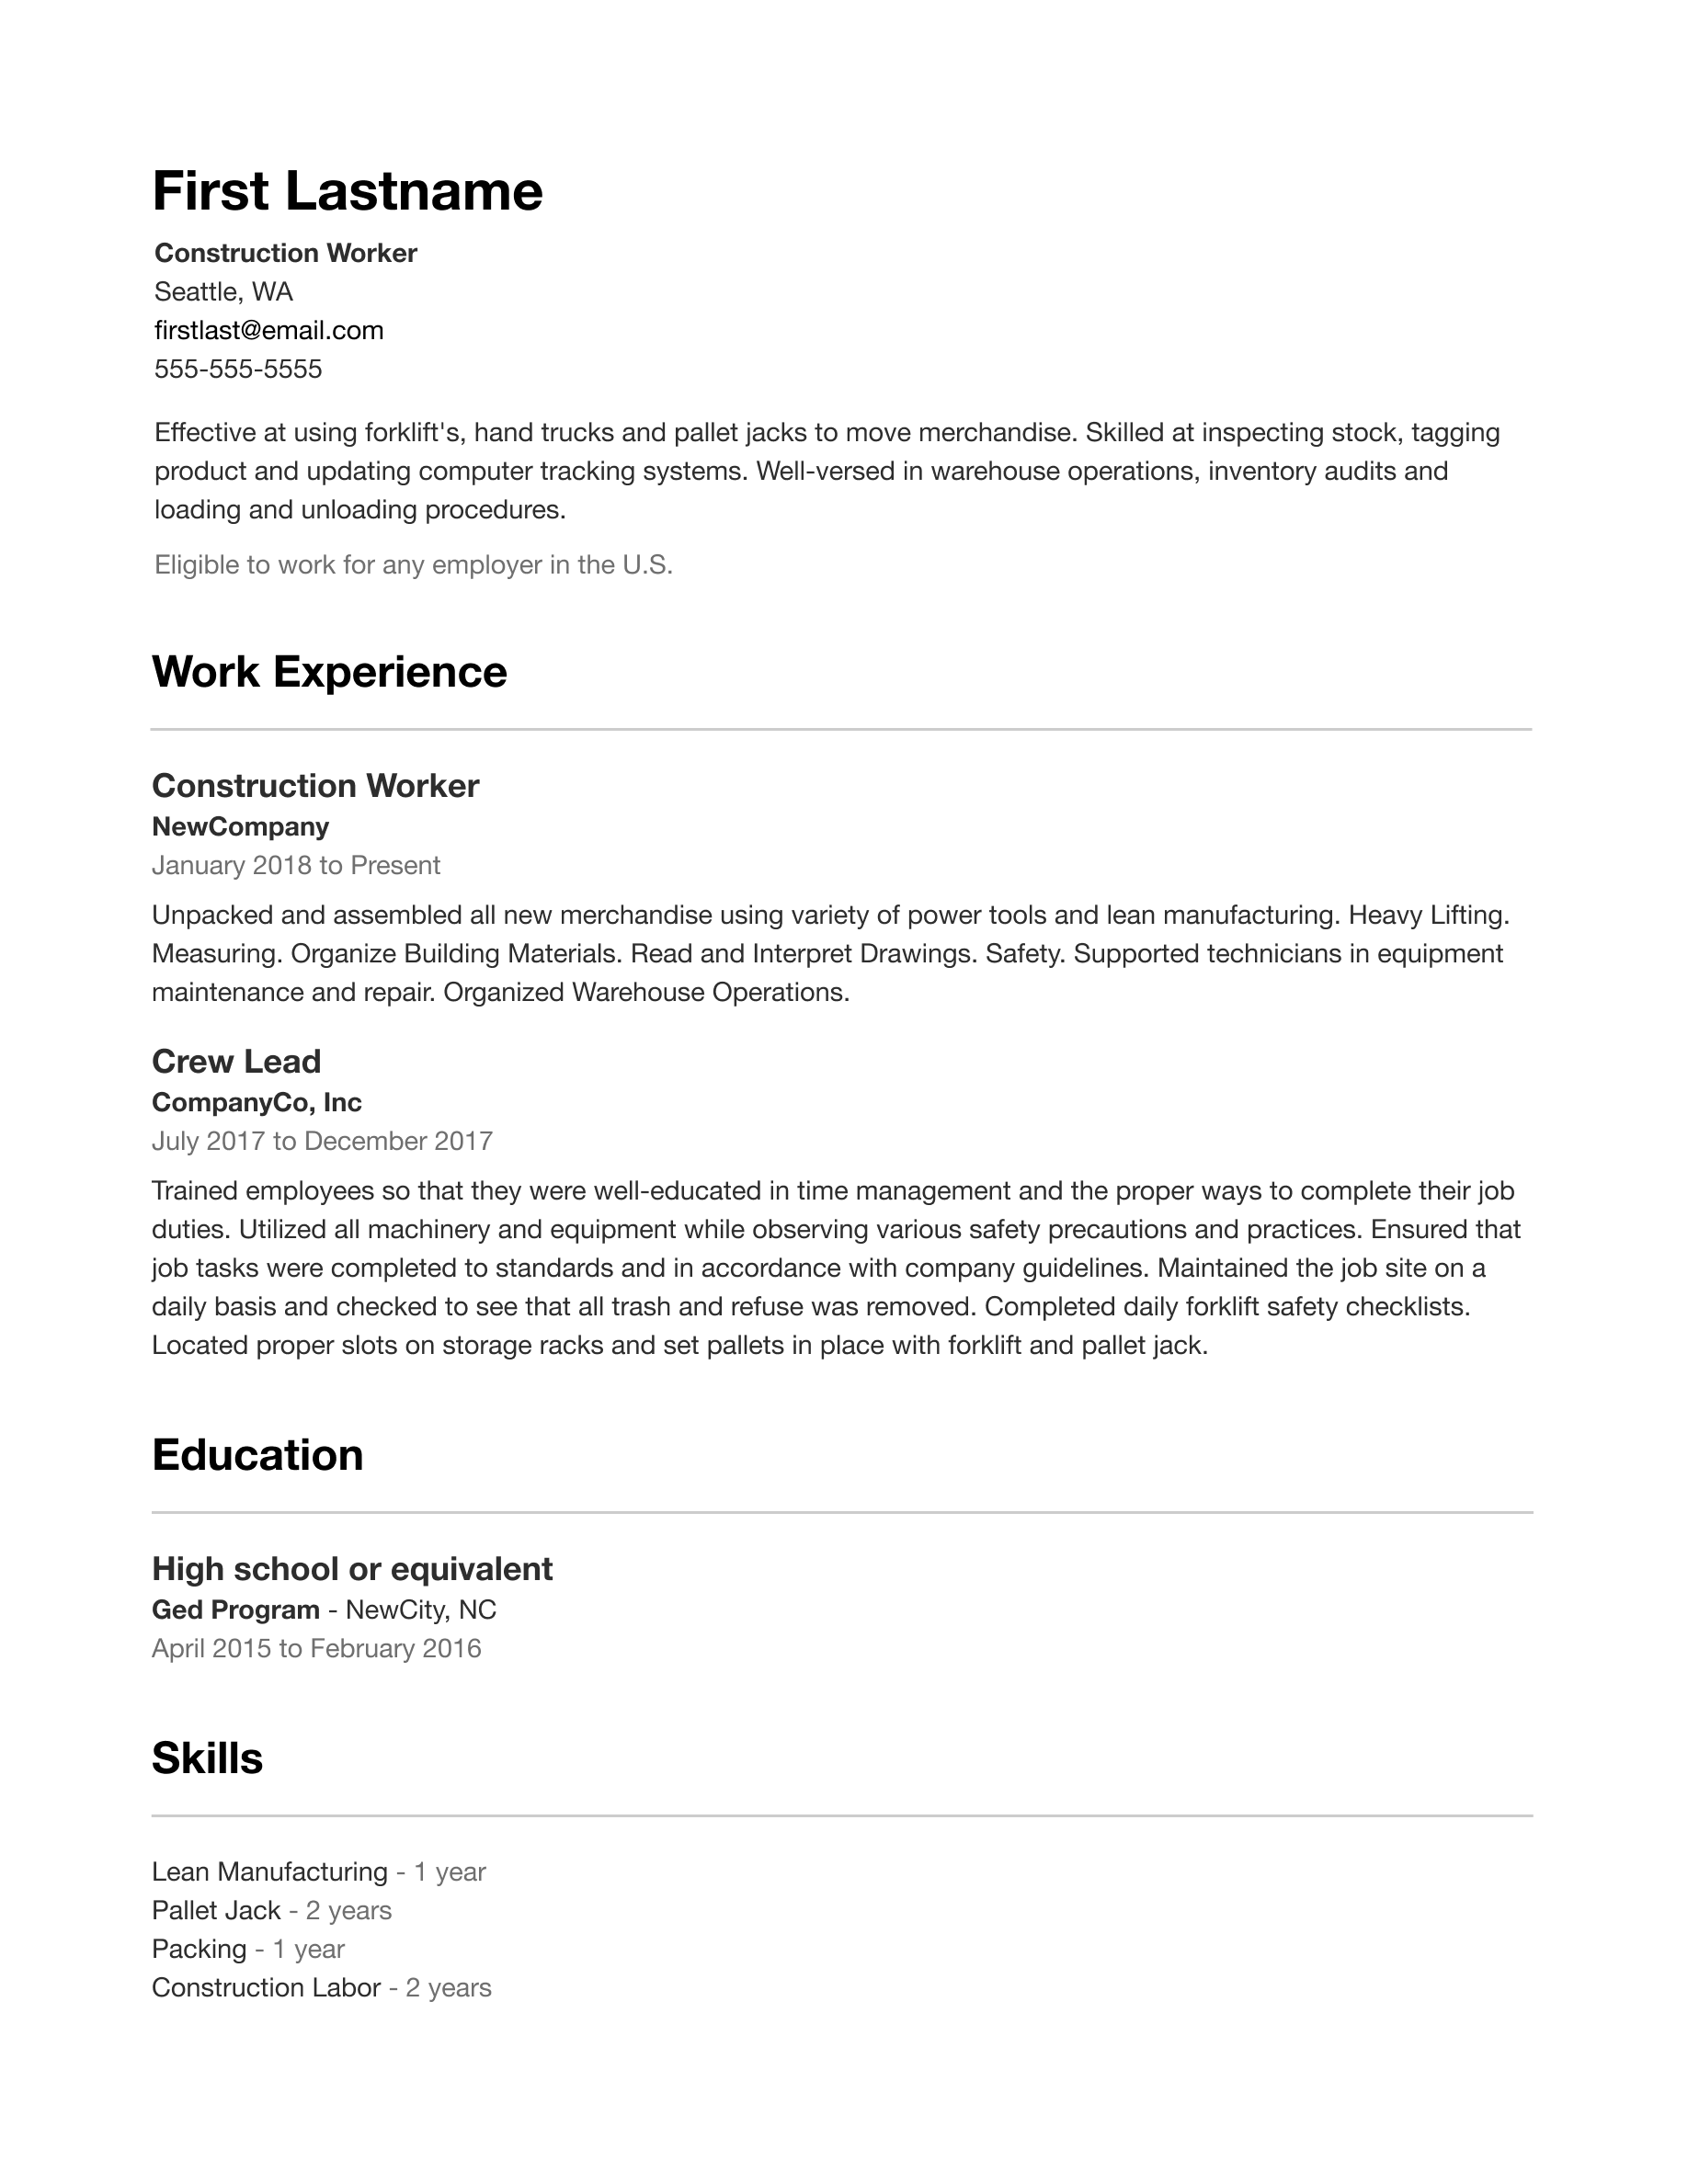 indeed.com resume templates